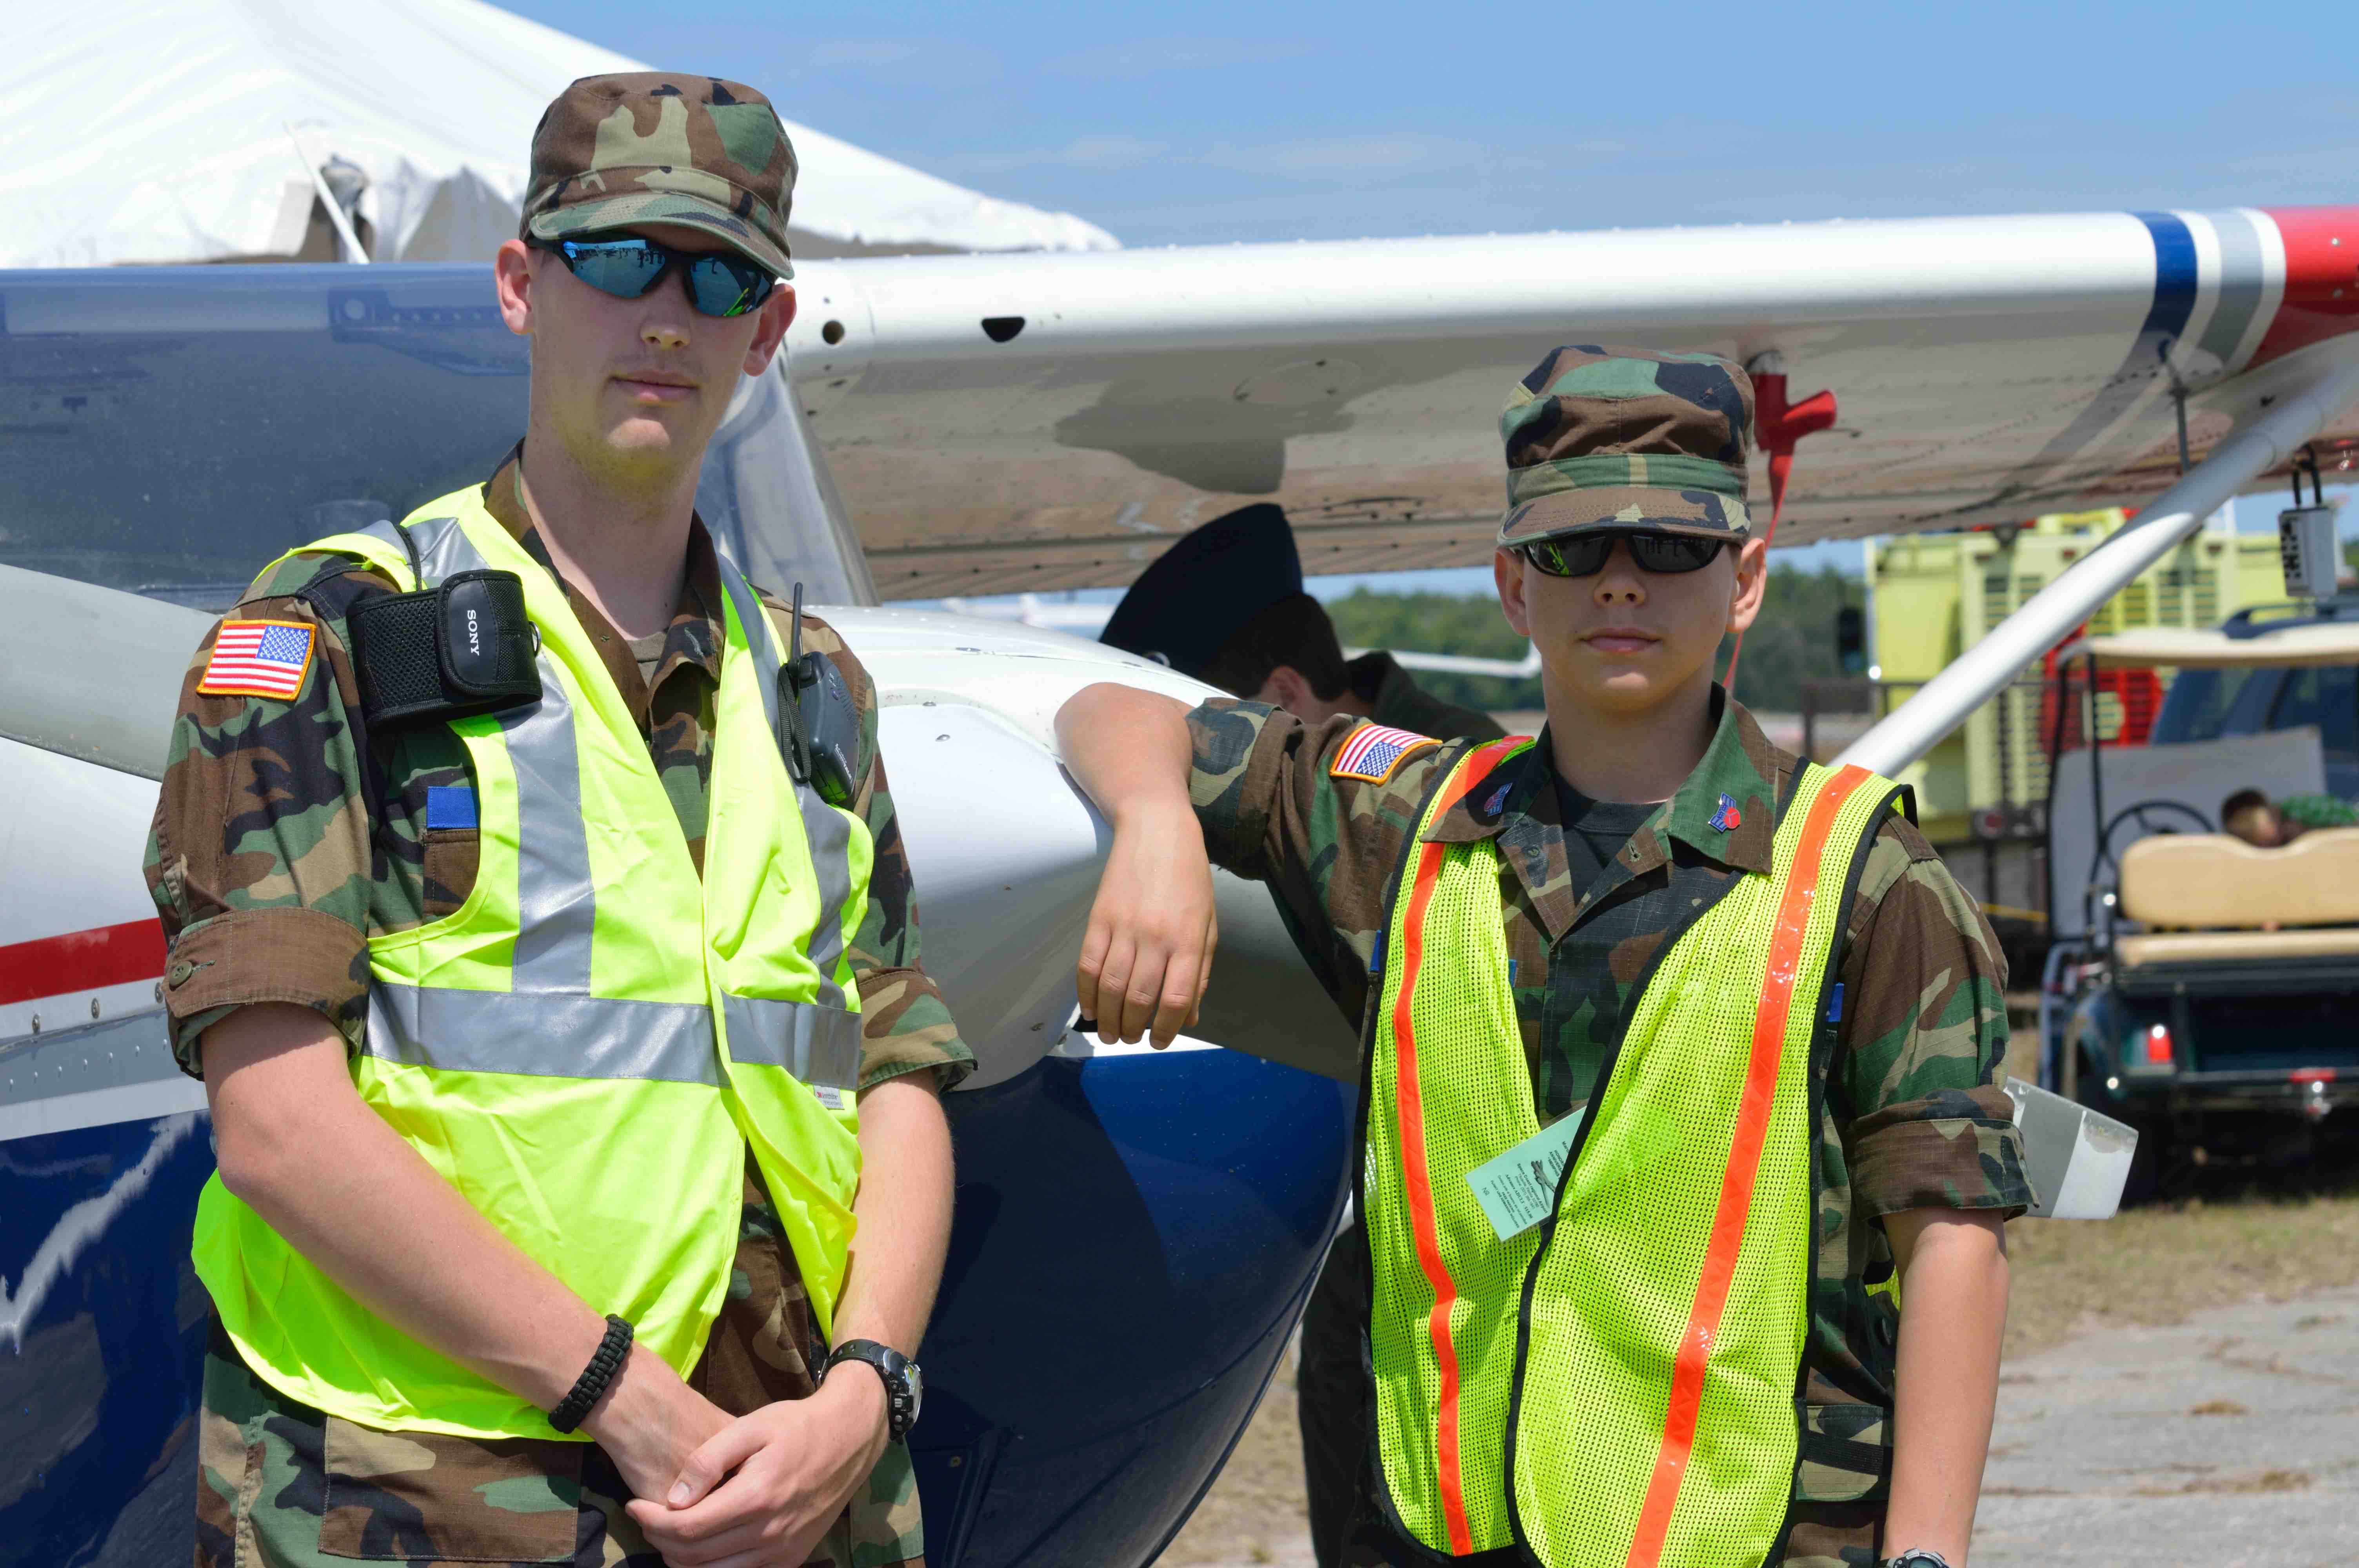 Ian Spirduso, Central Florida Squadron, and Andrew Briggs, Palm Bay squadron, worked at Gate 1.